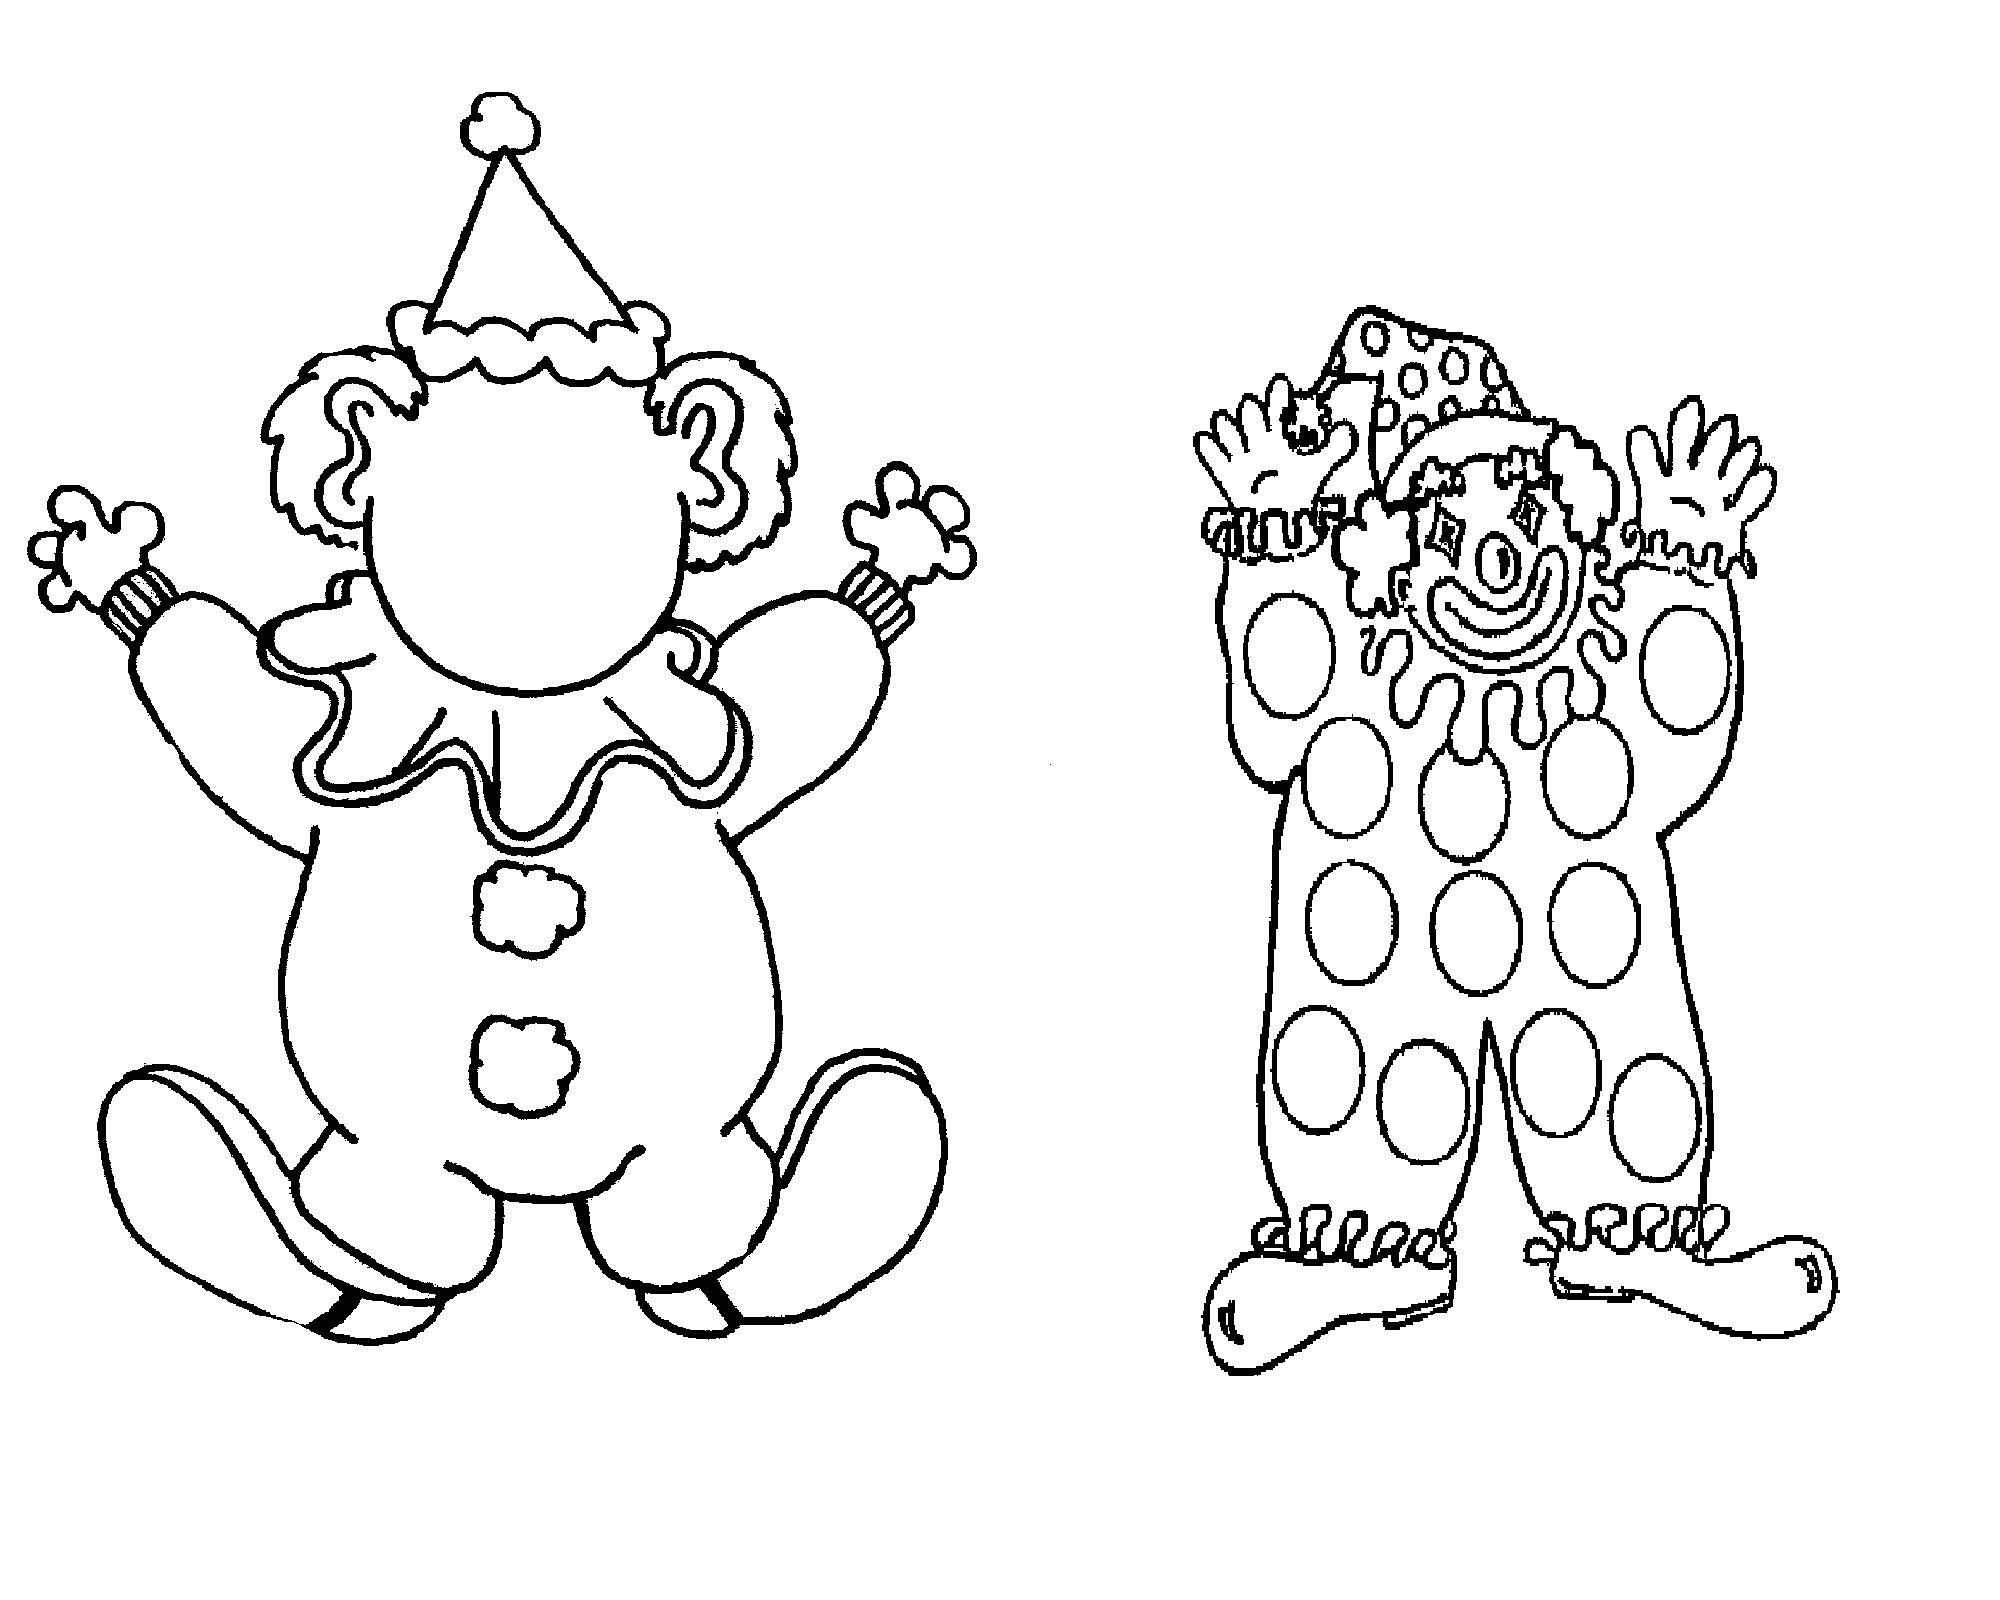 Clown clipart colouring page. Special pictures coloring unknown